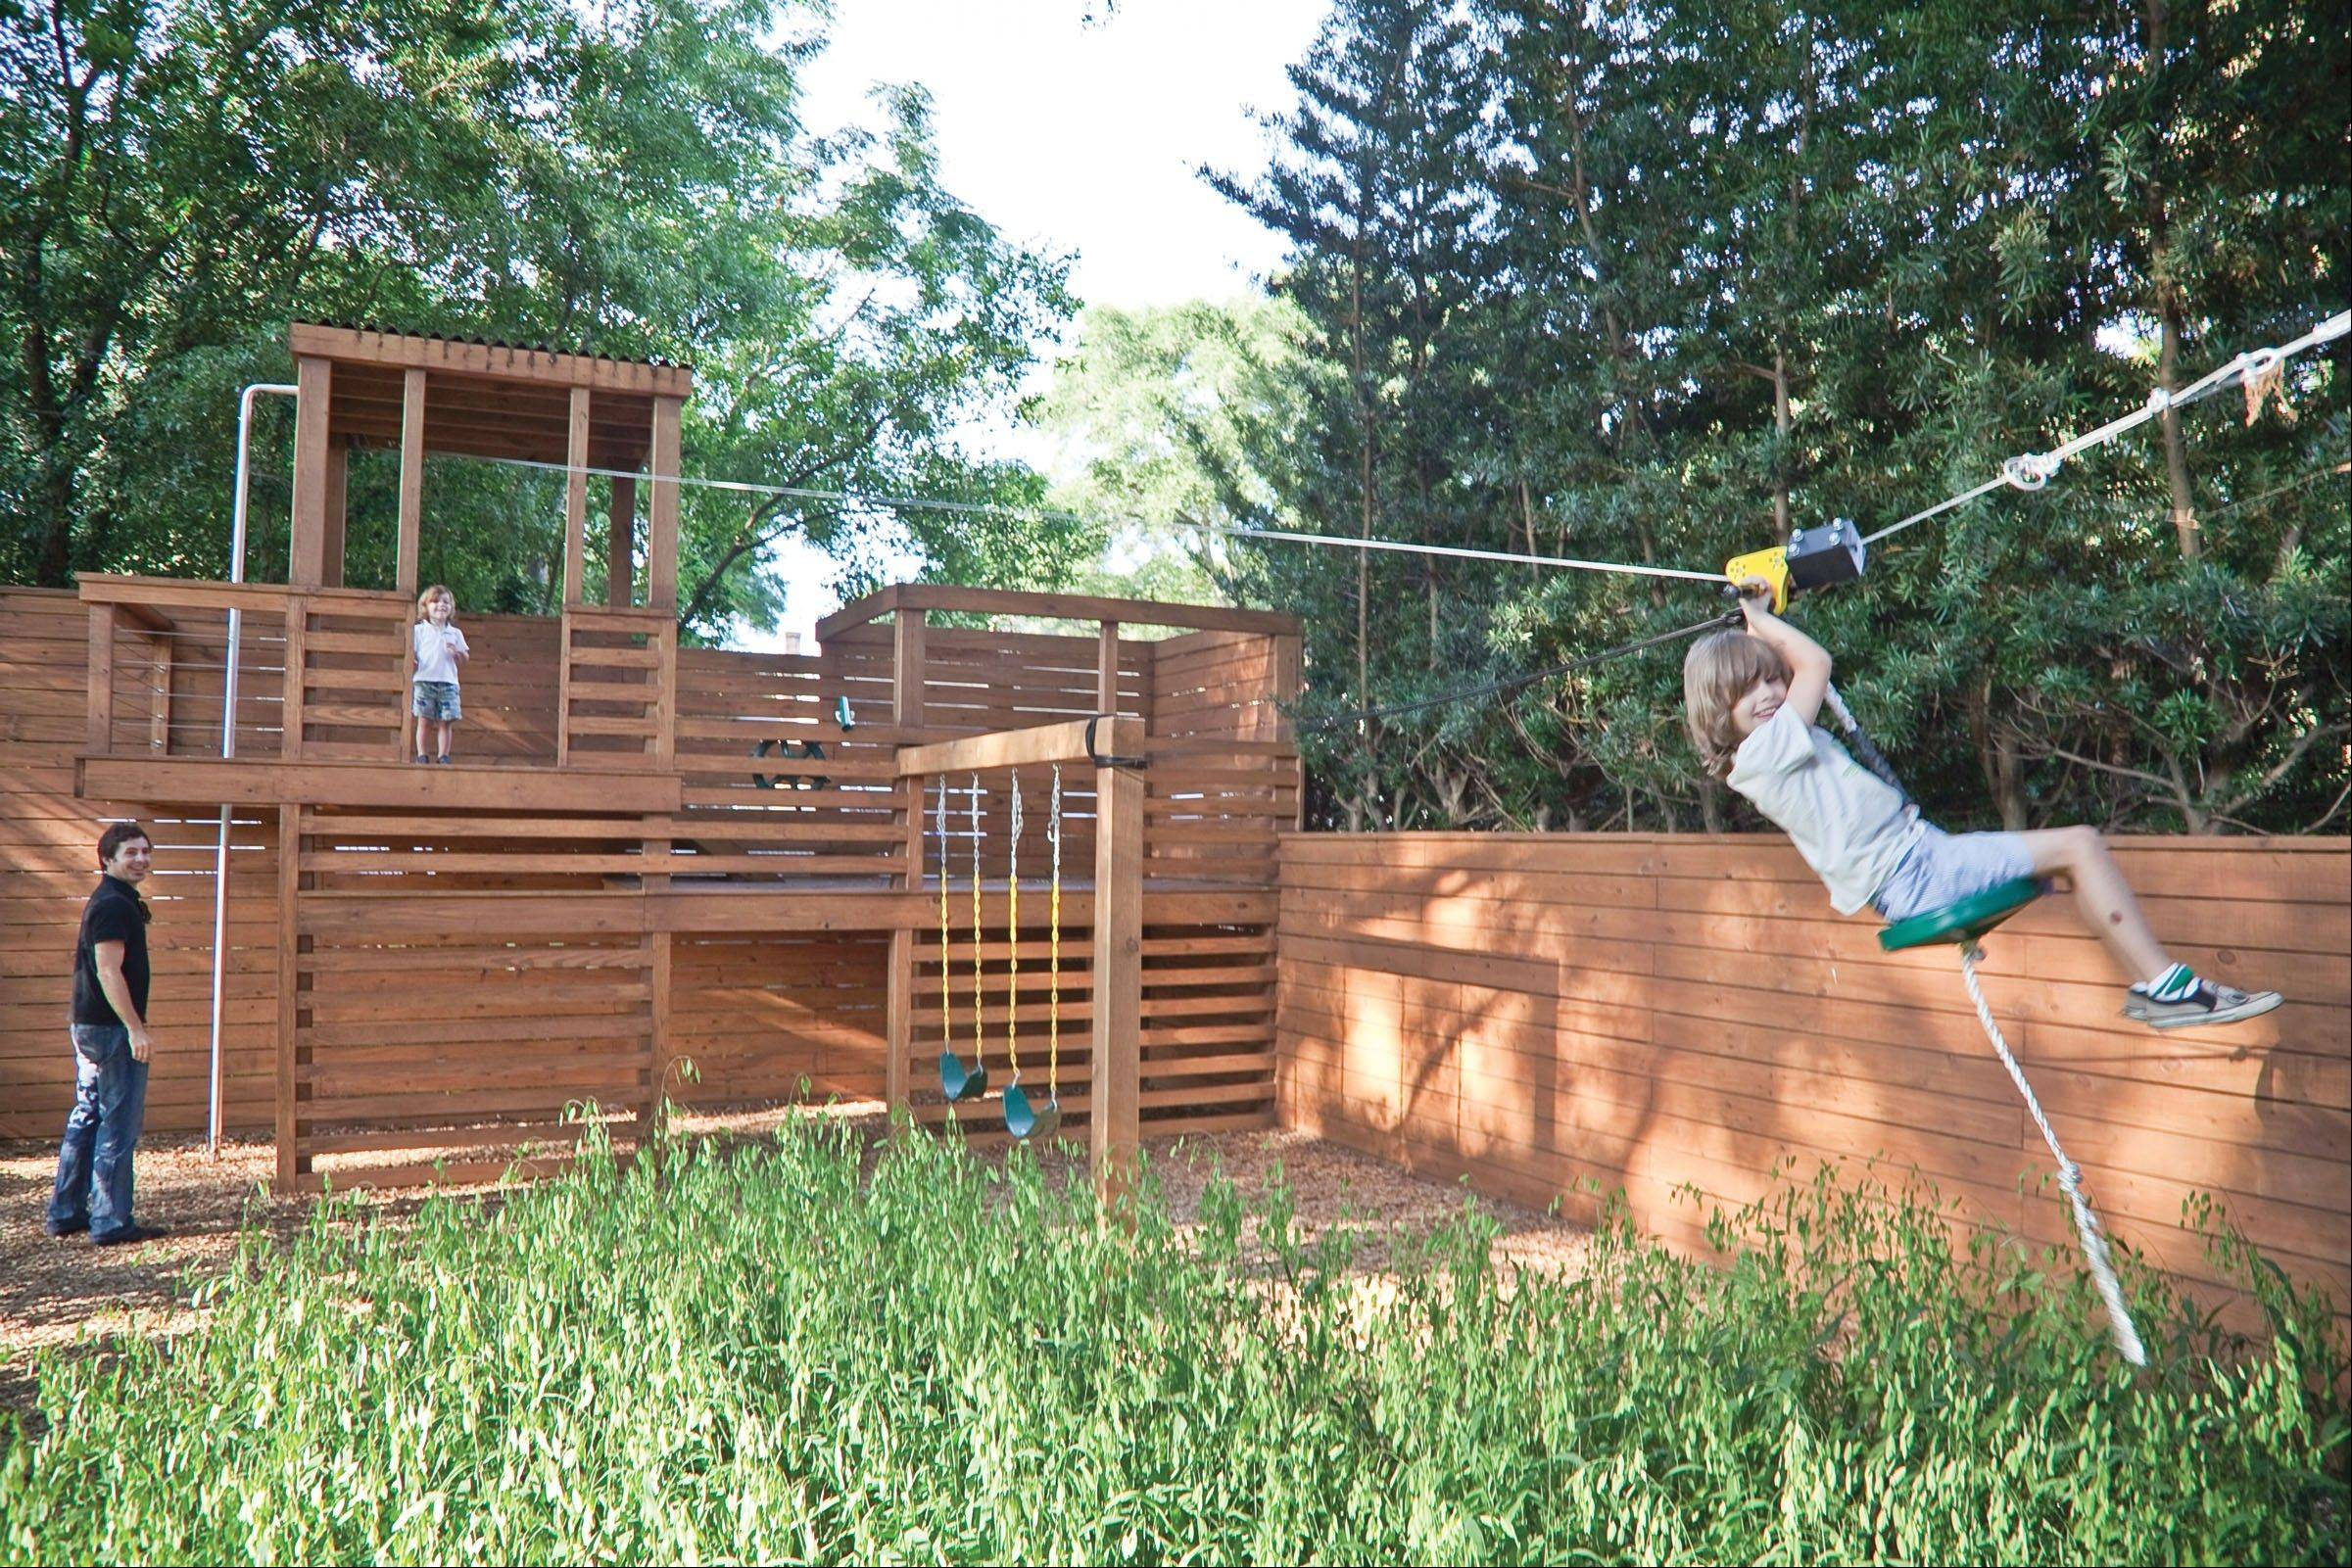 The Kramers' treehouse-like jungle gym blends into the backyard's fence and complements the natural surroundings, creating a playful area that adults can enjoy, too.